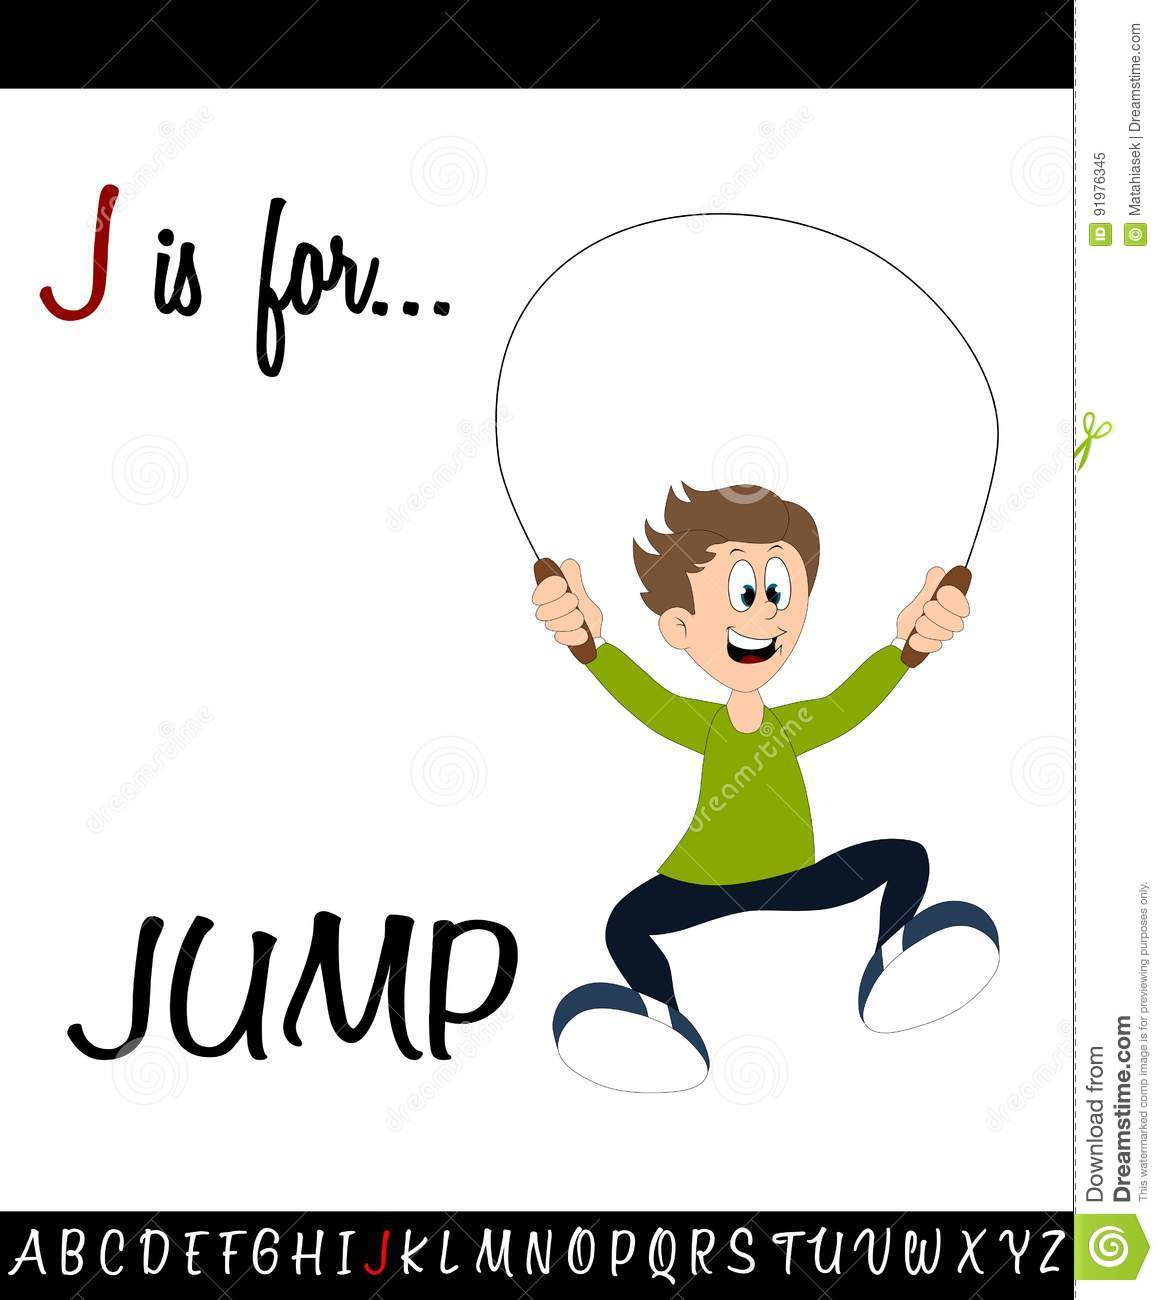 Illustrated Vocabulary Worksheet Card J Is For Jump Stock